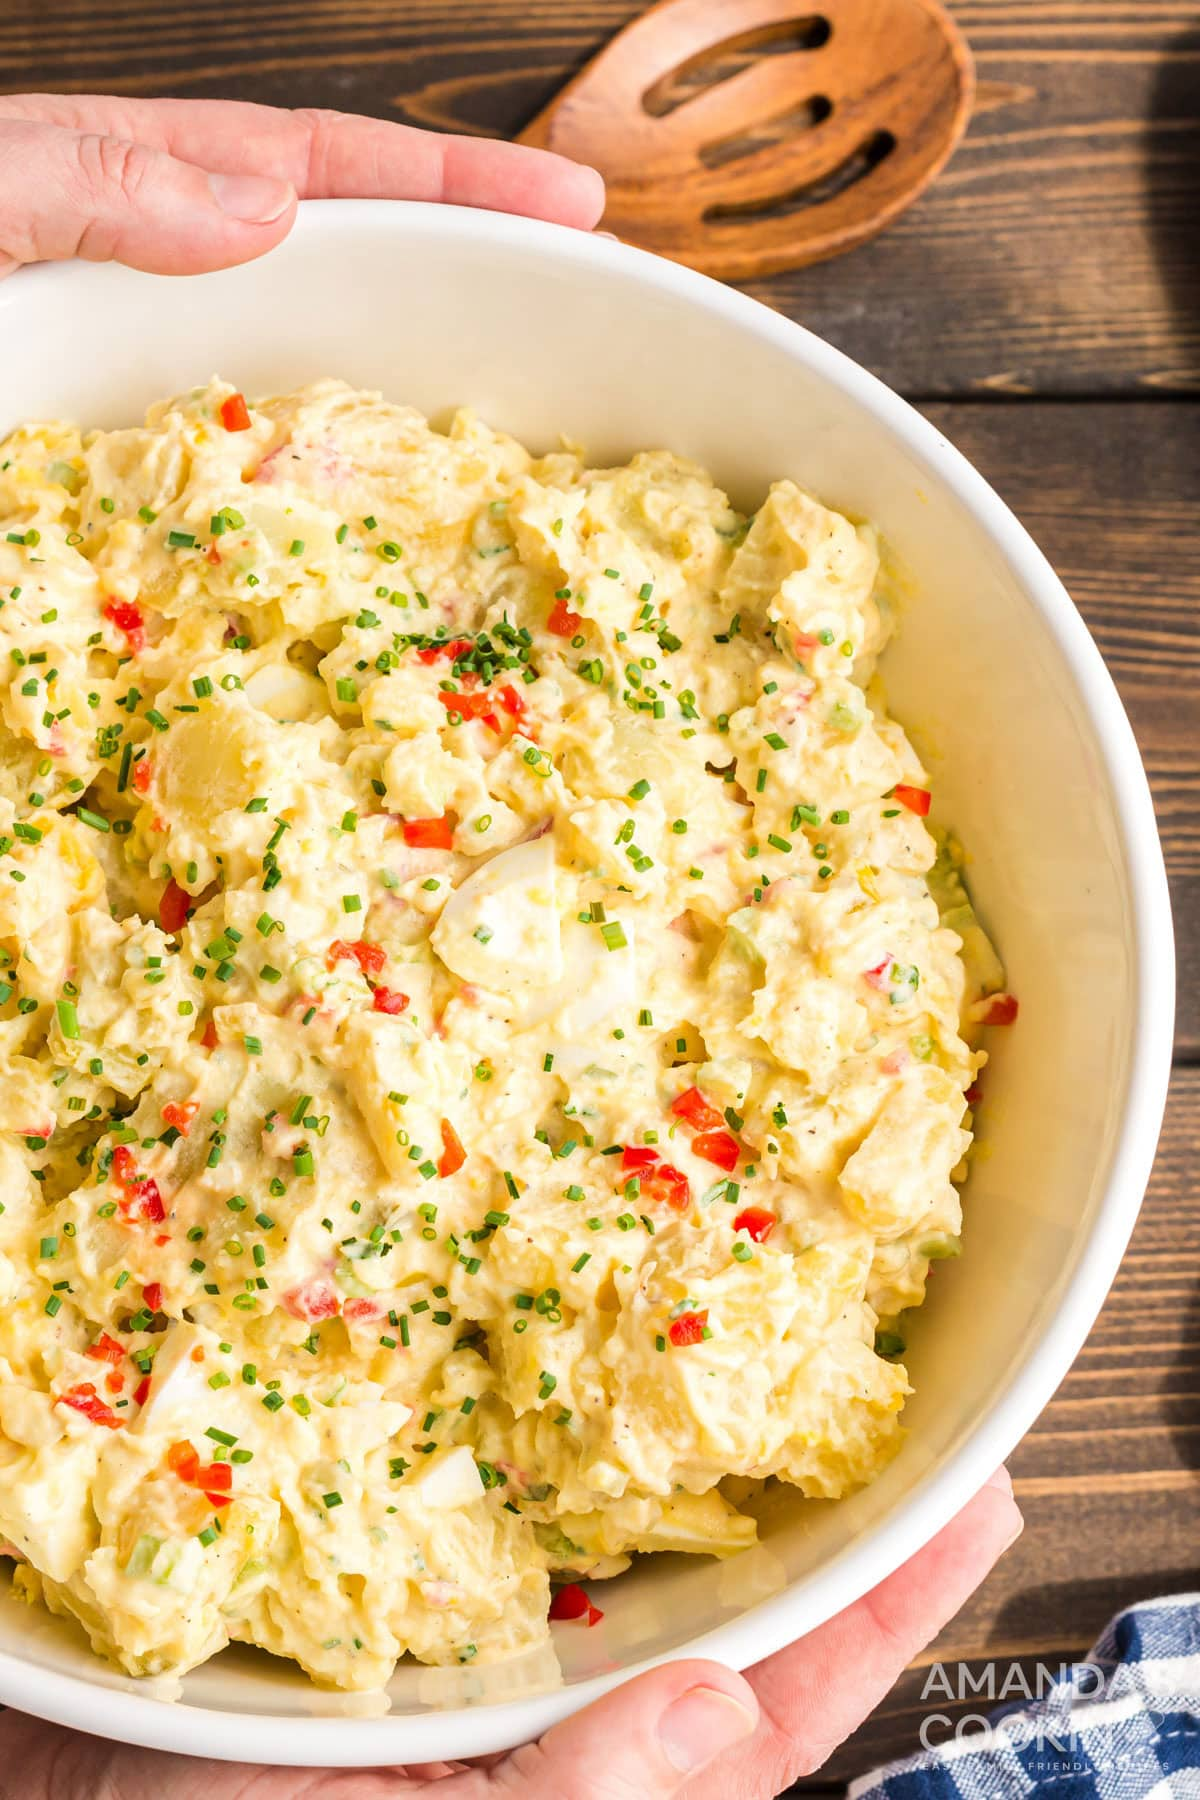 hands around large bowl of potato salad